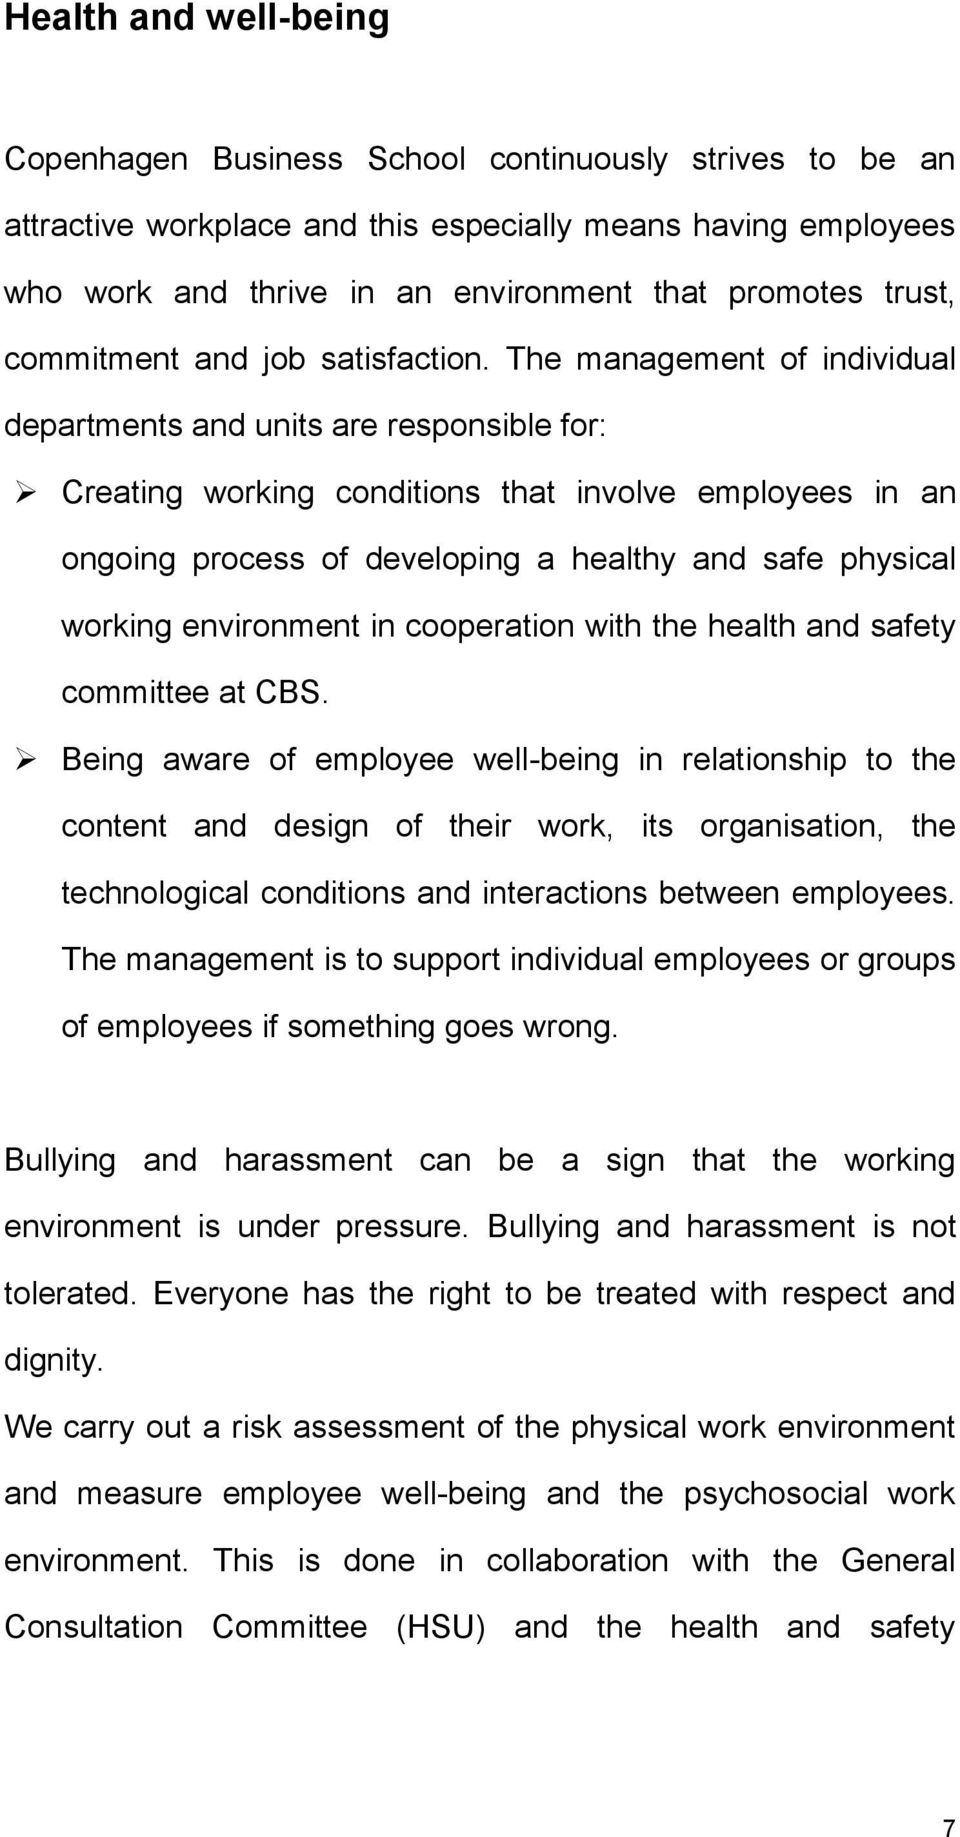 The management of individual departments and units are responsible for: Creating working conditions that involve employees in an ongoing process of developing a healthy and safe physical working